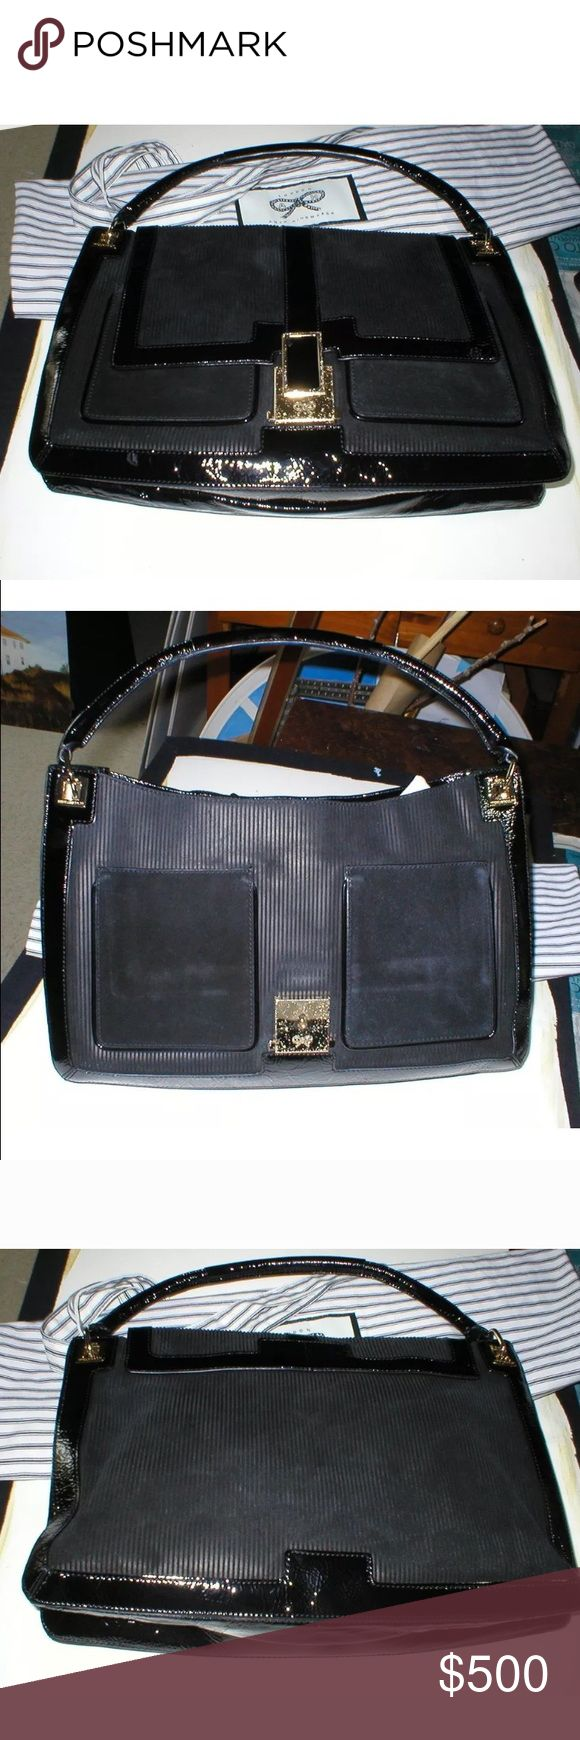 New Anya Hindmarch suede handbag Gorgeous Anya Hindmarch handbag, real suede and patent leather, comes with dust bag, never used, purchased in London Anya Hindmarch Bags Shoulder Bags